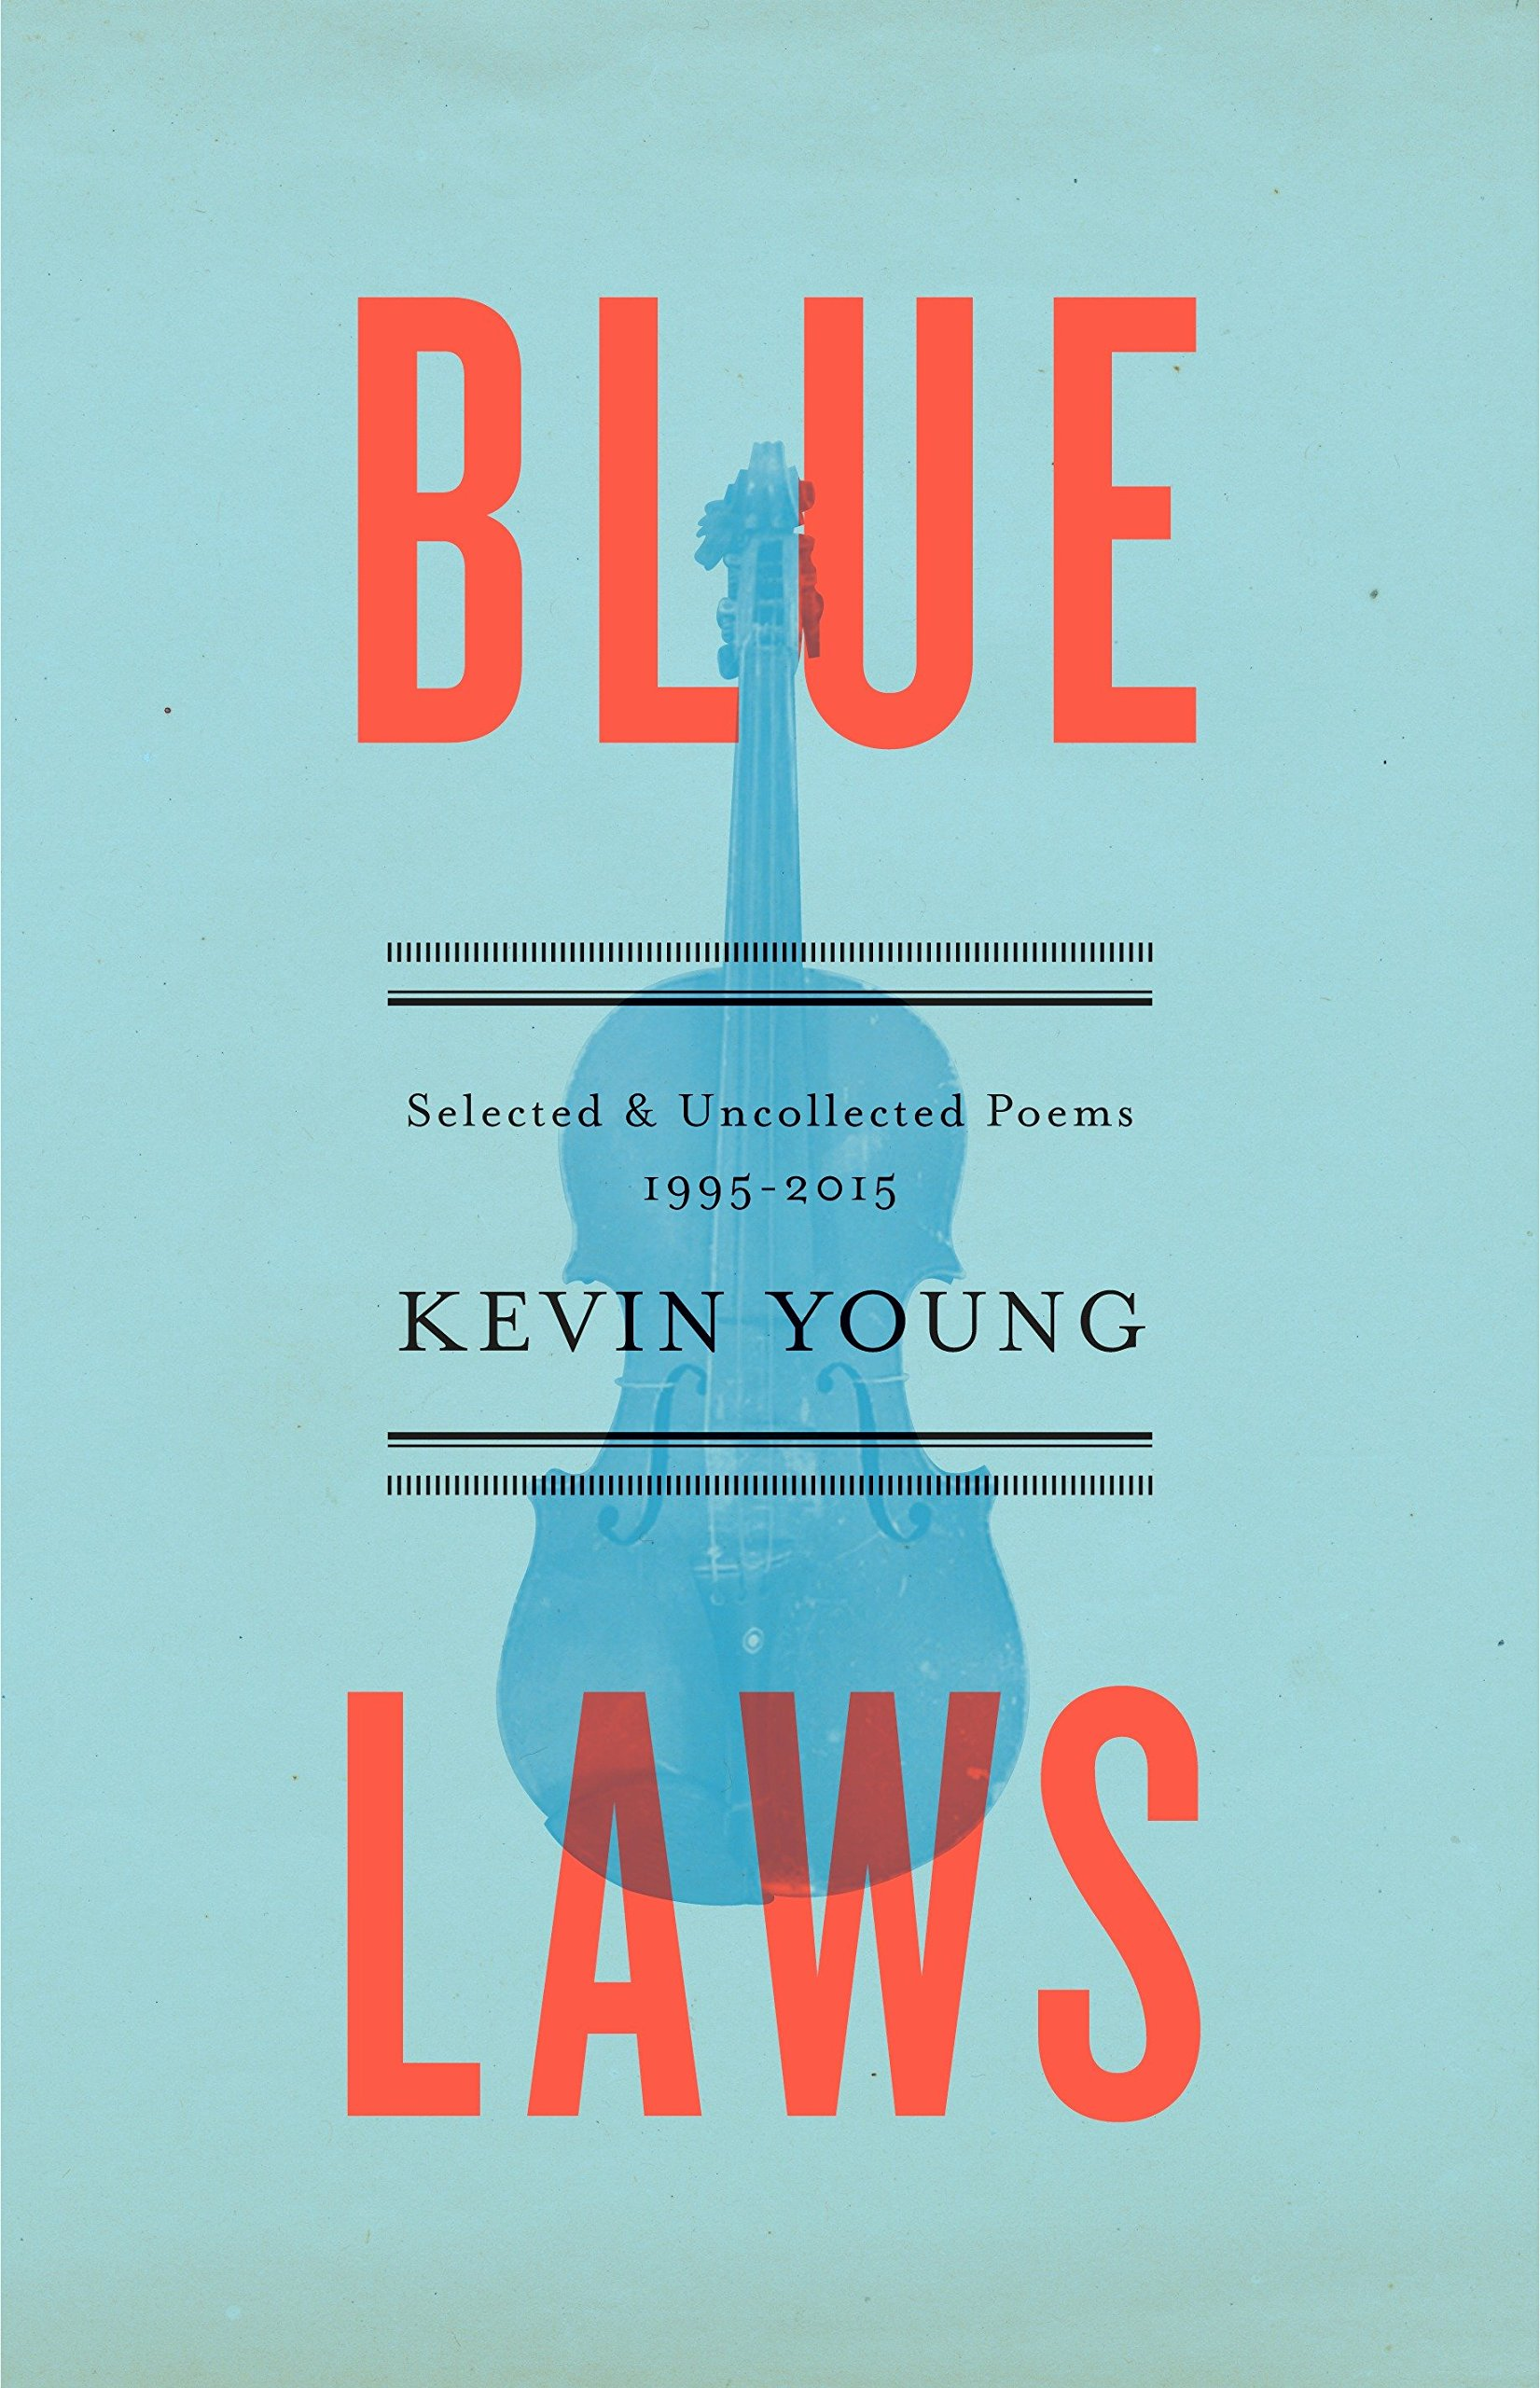 Blue Laws: Selected and Uncollected Poems, 1995-2015 pdf